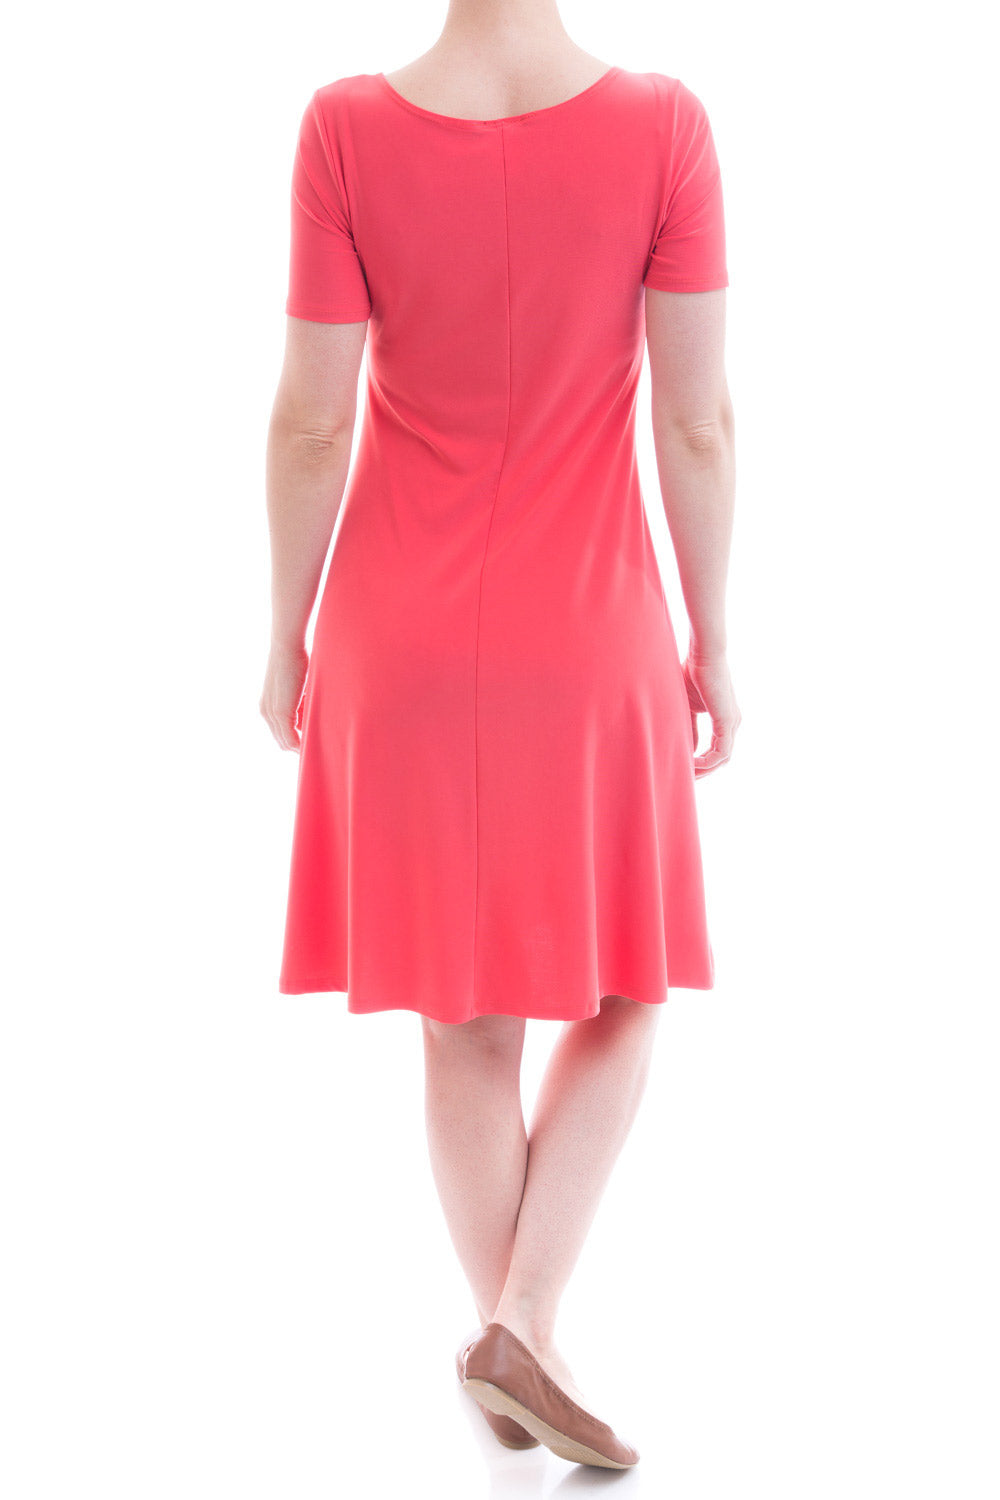 Type 1 Shinning For You Dress In Coral